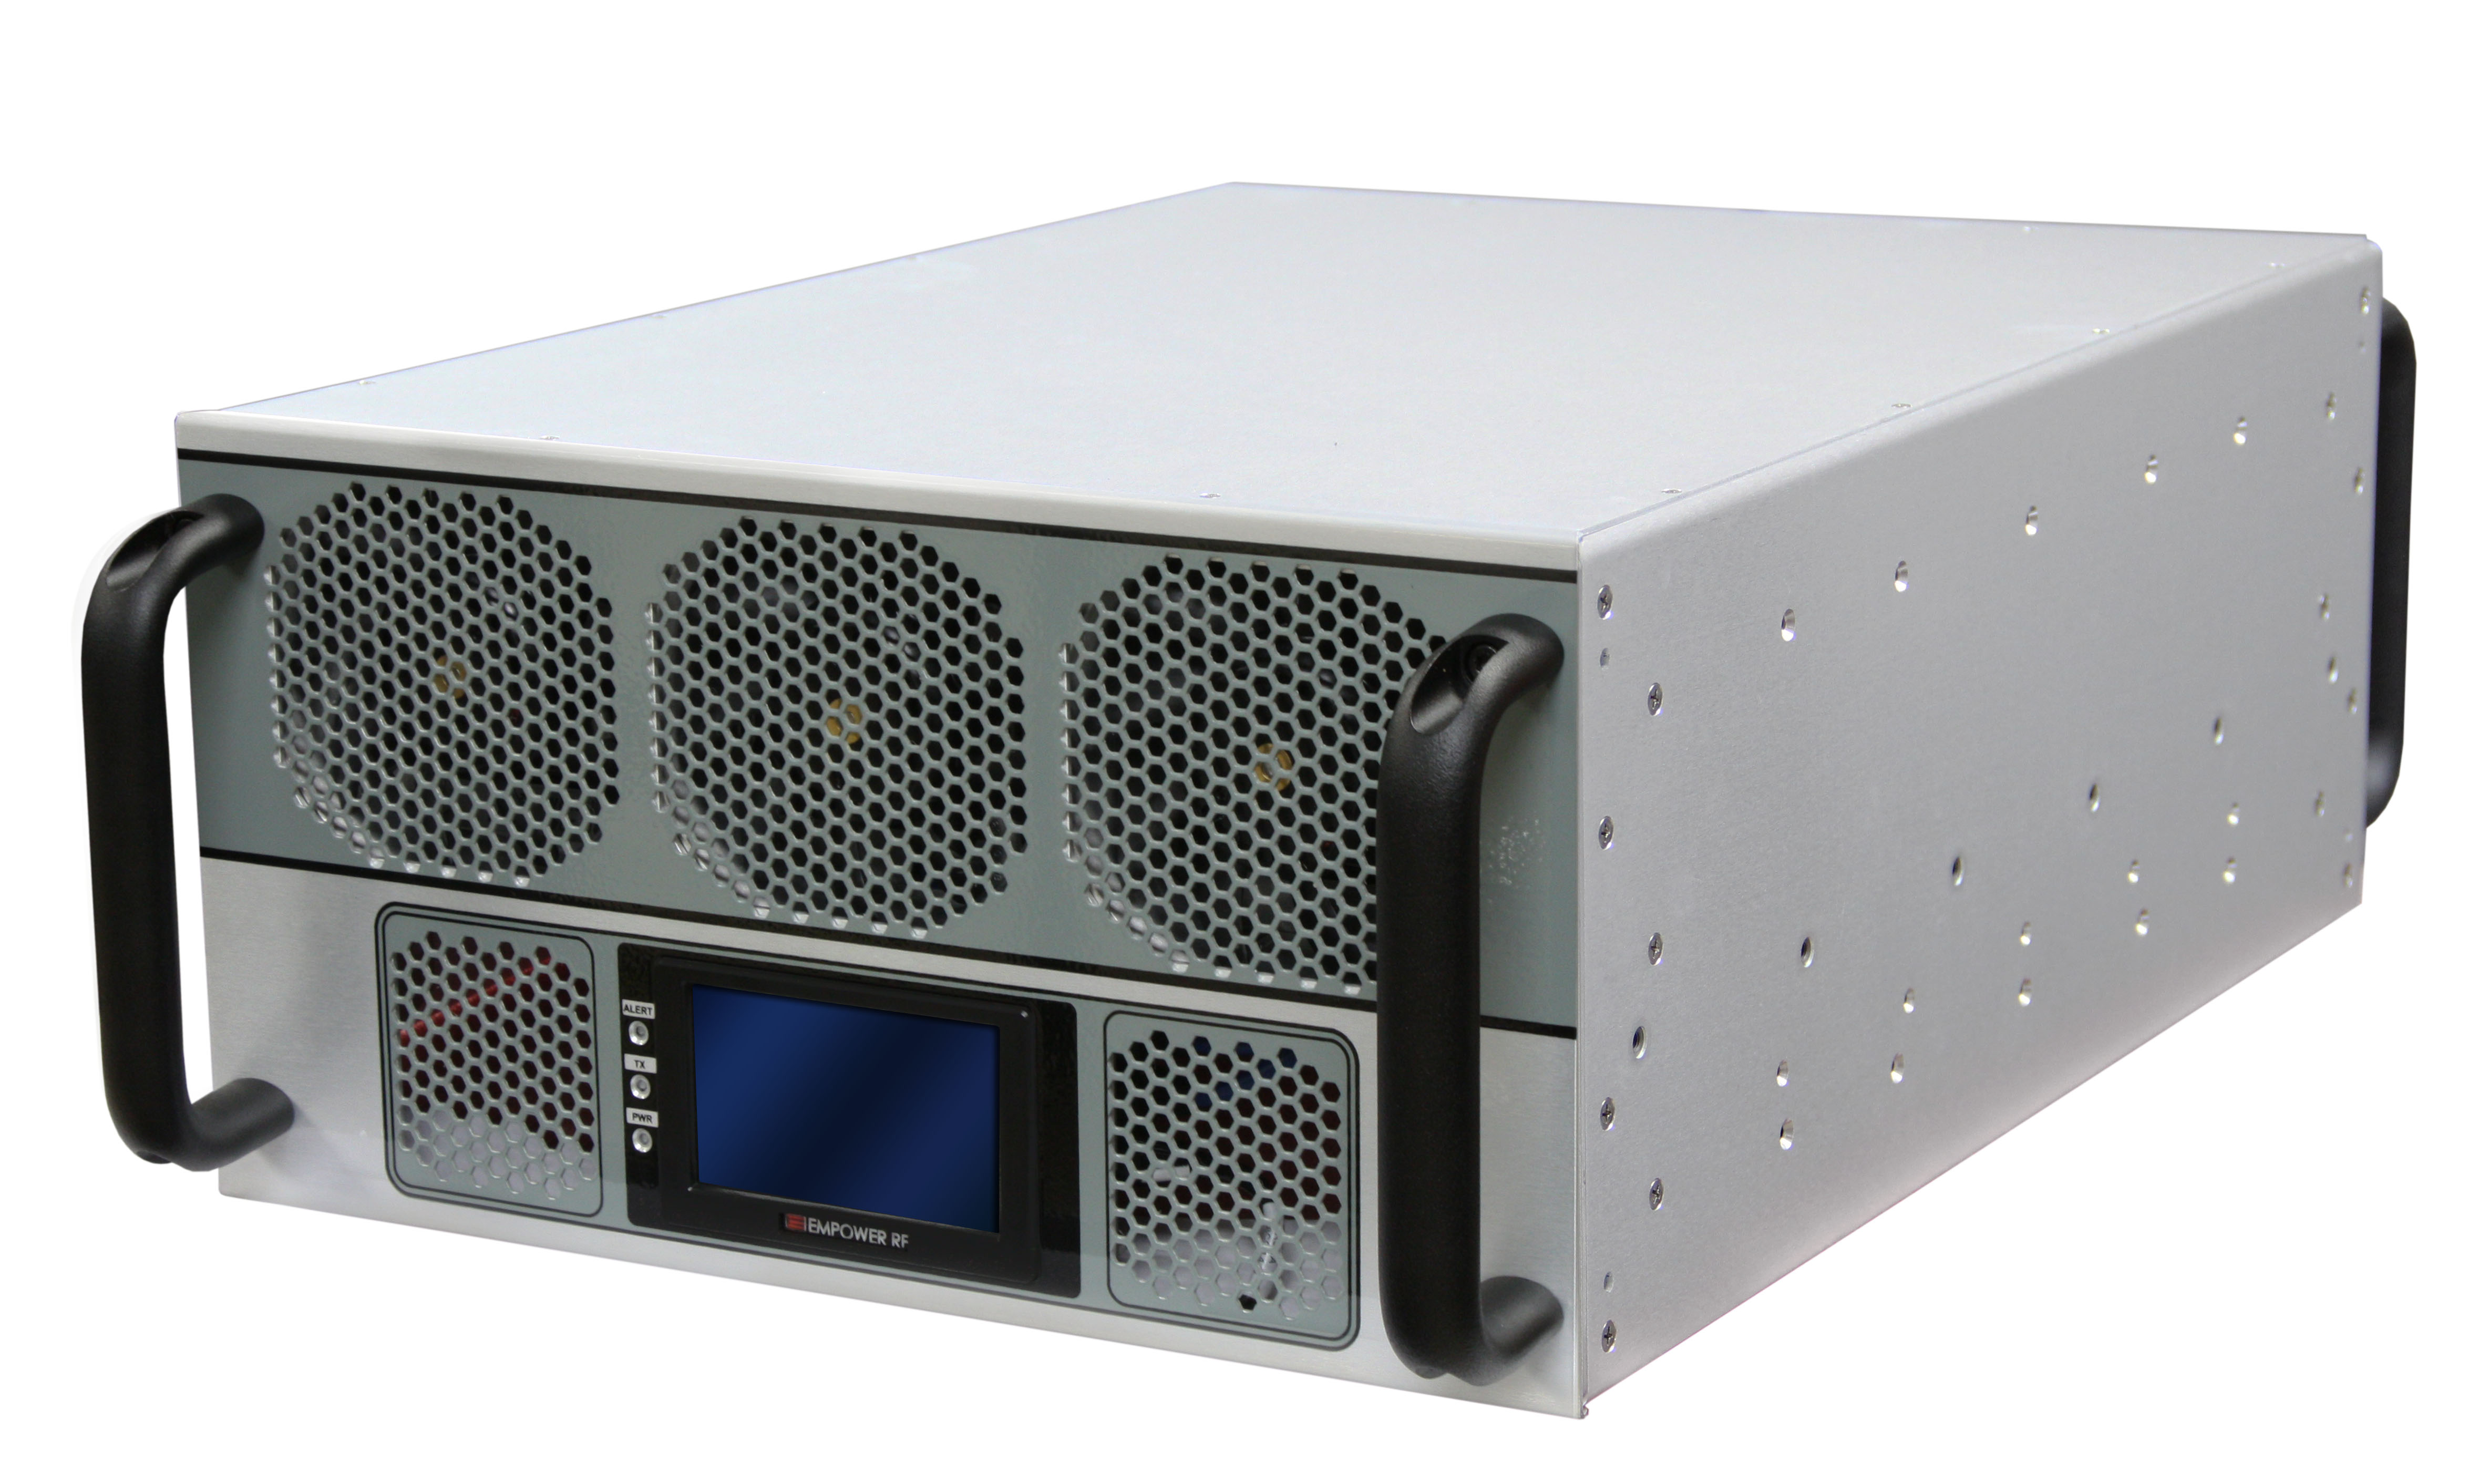 Empower 2170 Solid State Broadband High Power Amplifier 1 GHz - 3 GHz, 1000 W